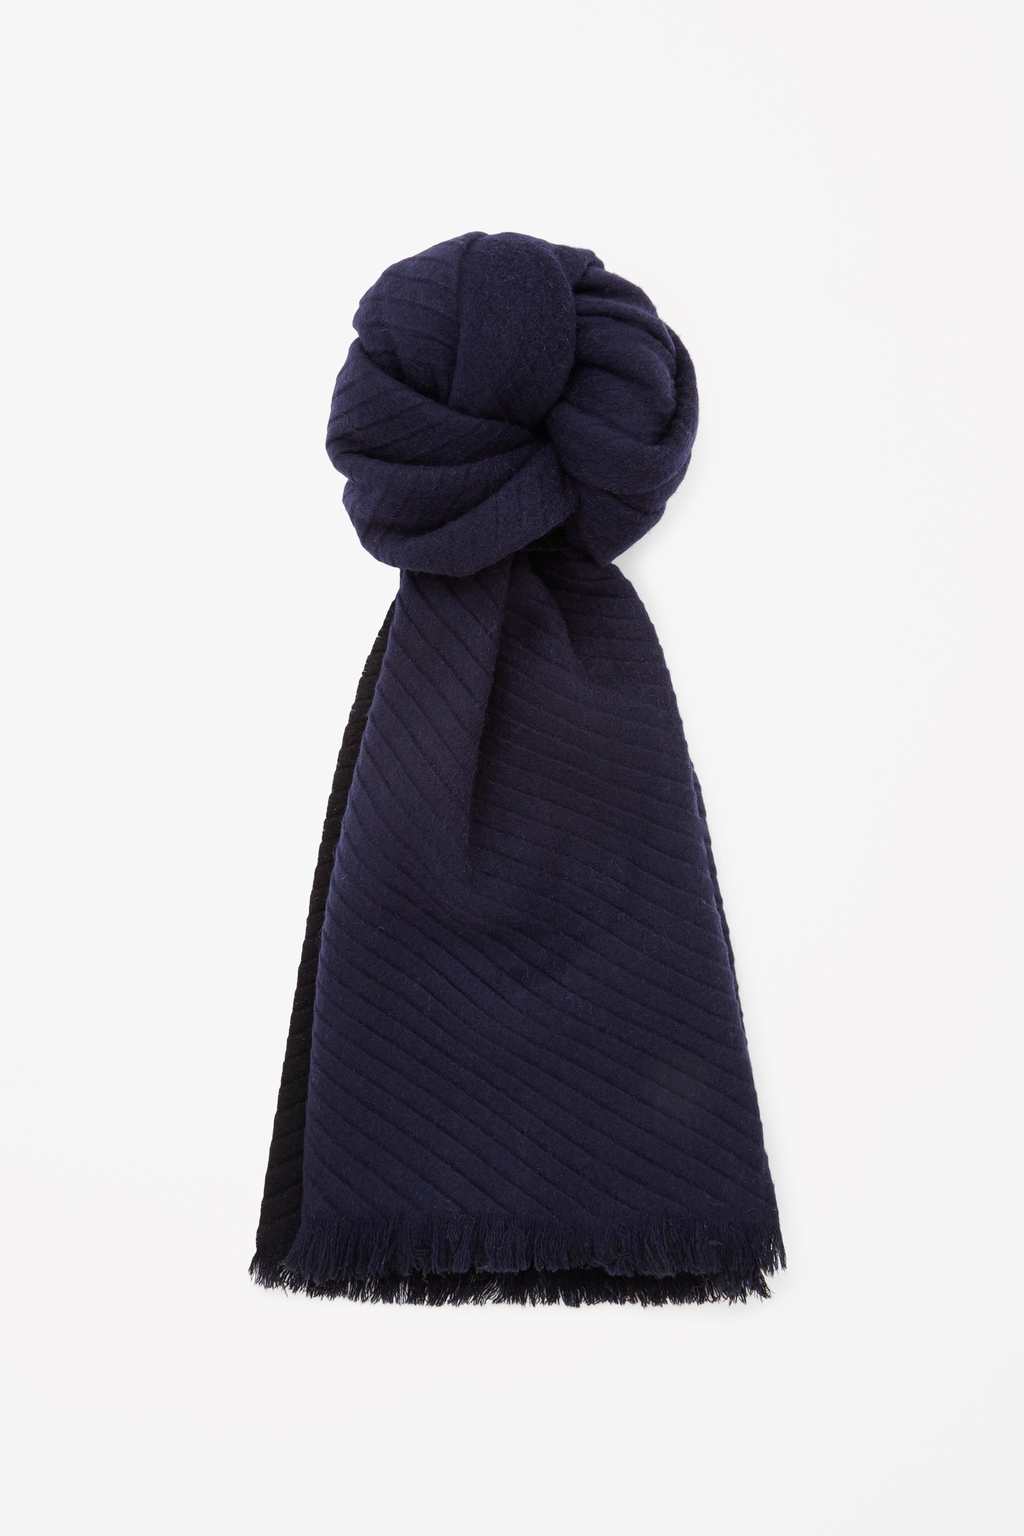 Pleated Wool Scarf - predominant colour: navy; secondary colour: black; occasions: casual, creative work; type of pattern: standard; style: regular; size: standard; material: fabric; pattern: plain; season: s/s 2015; wardrobe: basic